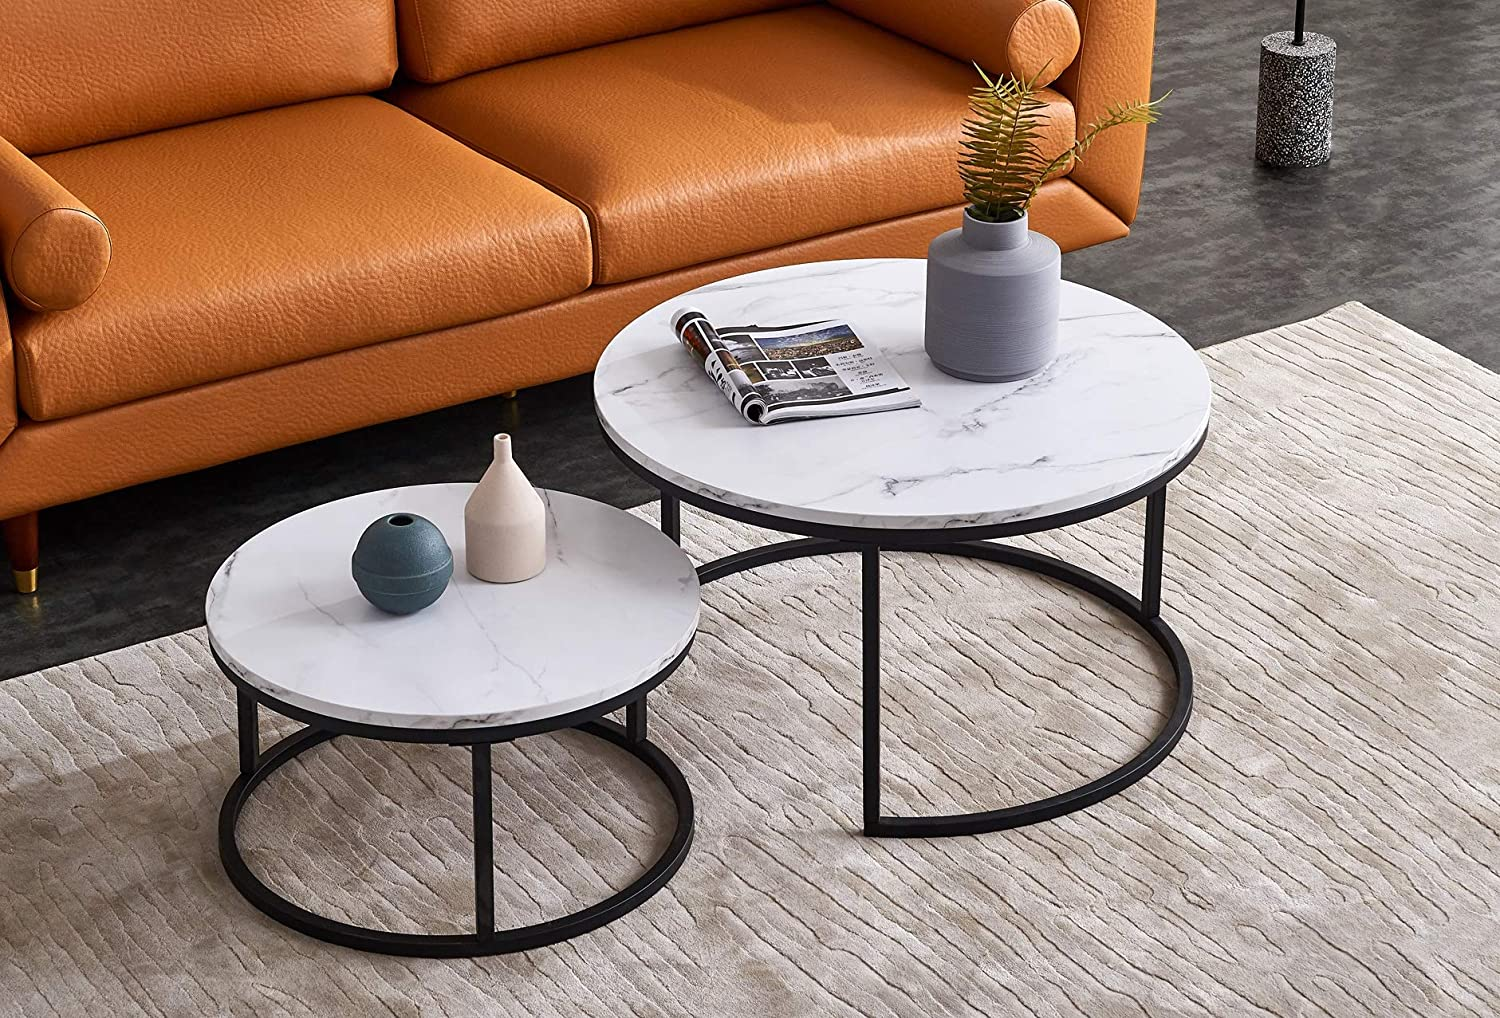 Amazon Com Knowlife Modern Coffee Table Set Of 2 Nesting Tables Small Round Table With Marble Texture For Small Space And Living Room 32 Kitchen Dining